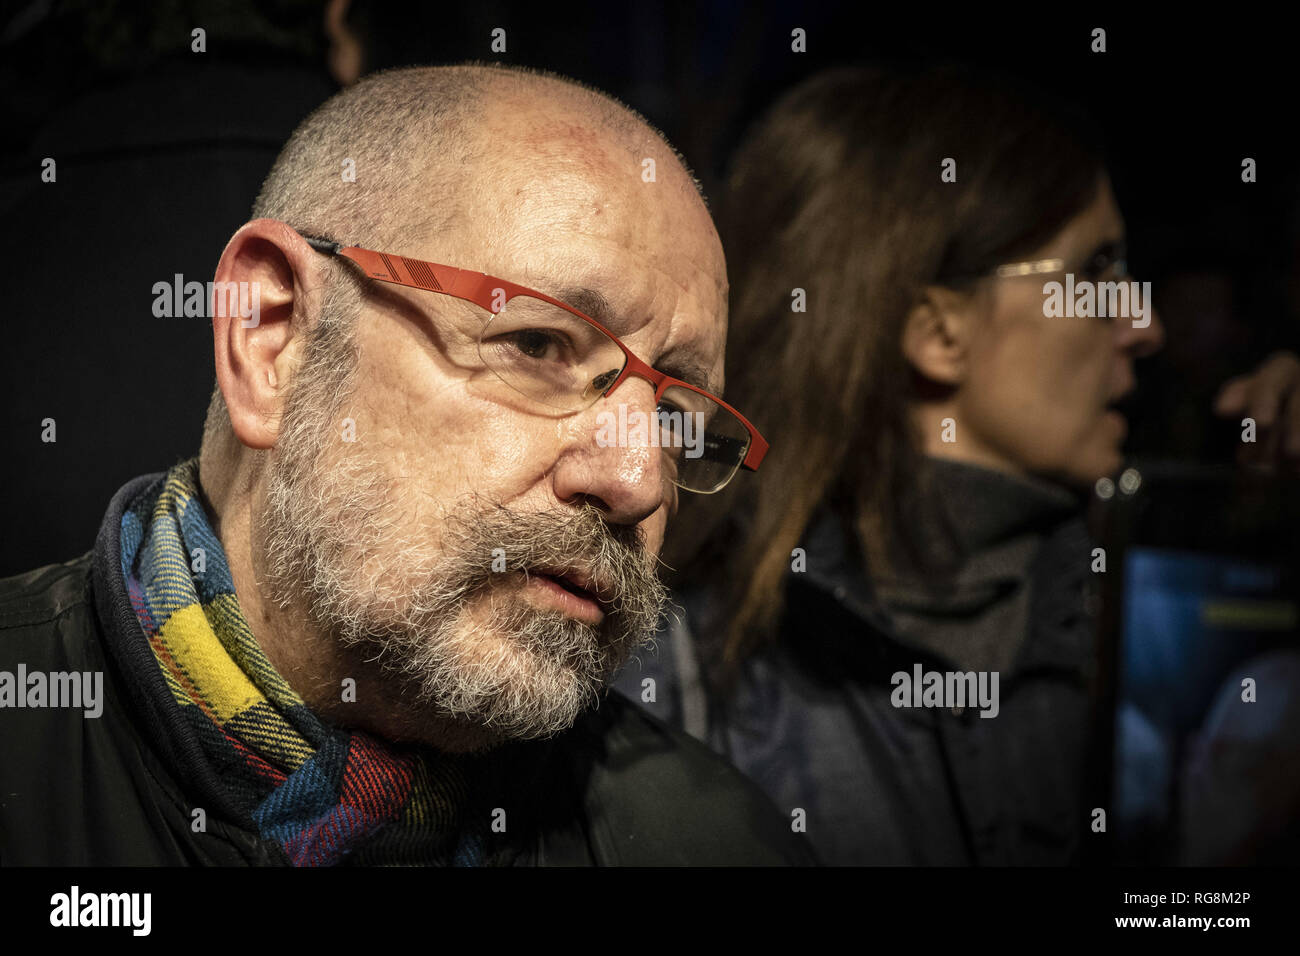 Barcelona, catalonia, Spain. 28th Jan, 2019. Jordi Lozano González, known by Jordi Petit, a historical LGTBI activist is seen during the protest.The LGTBI community, with the support of the mayor of Barcelona Ada Colau, have made an act of protest against the fascist attack against the new headquarters of the collective LGTBI. The first LGTBI center in Catalonia appeared with death threat texts and broken glass after the launching. Credit: Paco Freire/SOPA Images/ZUMA Wire/Alamy Live News - Stock Image